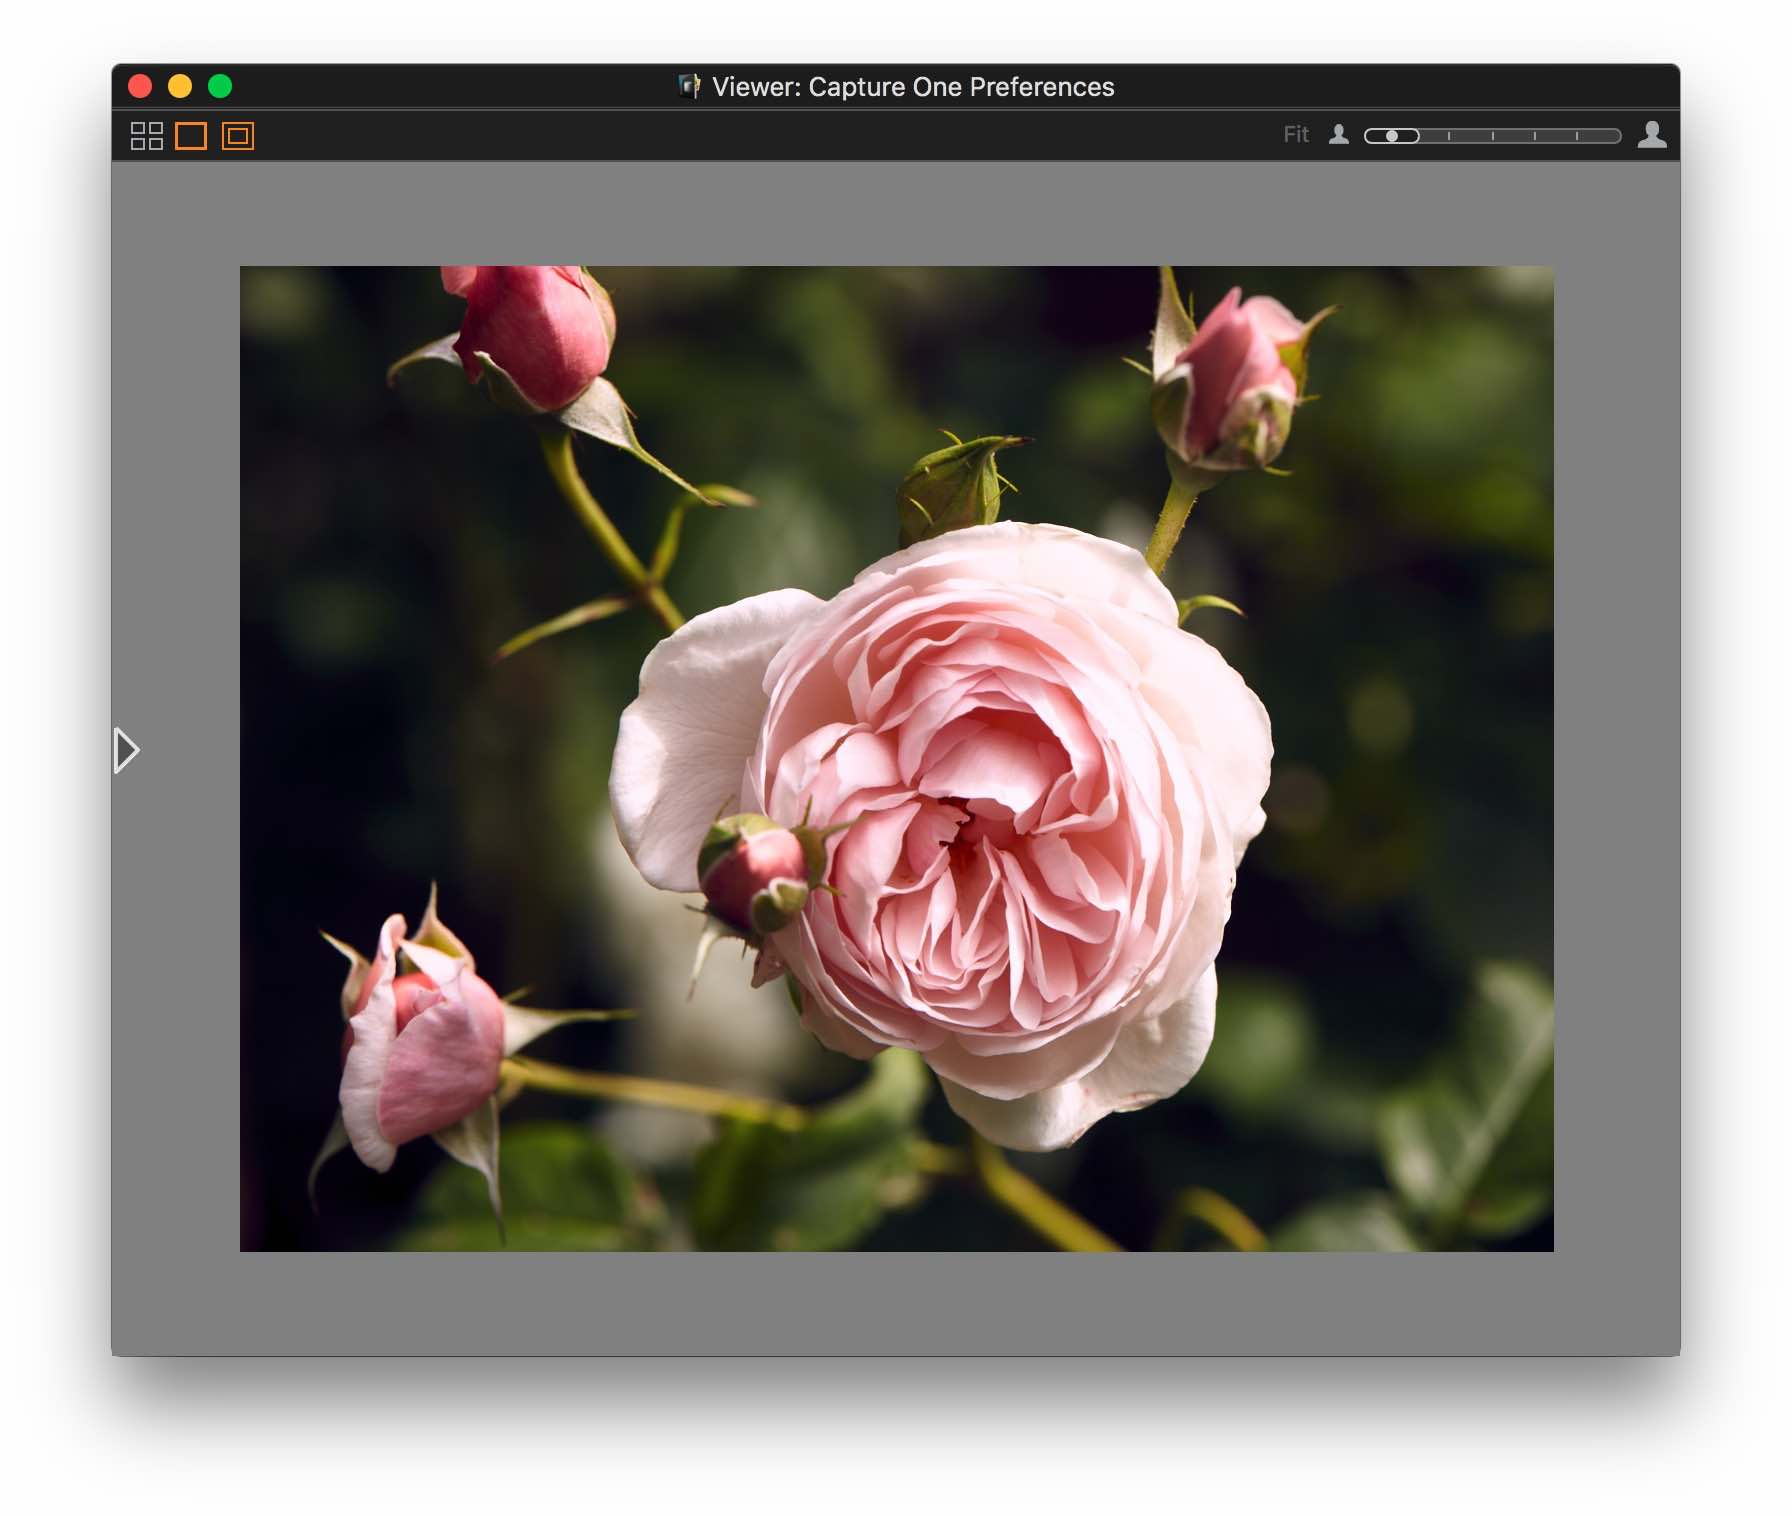 capture one 10, viewer, proof margin medium